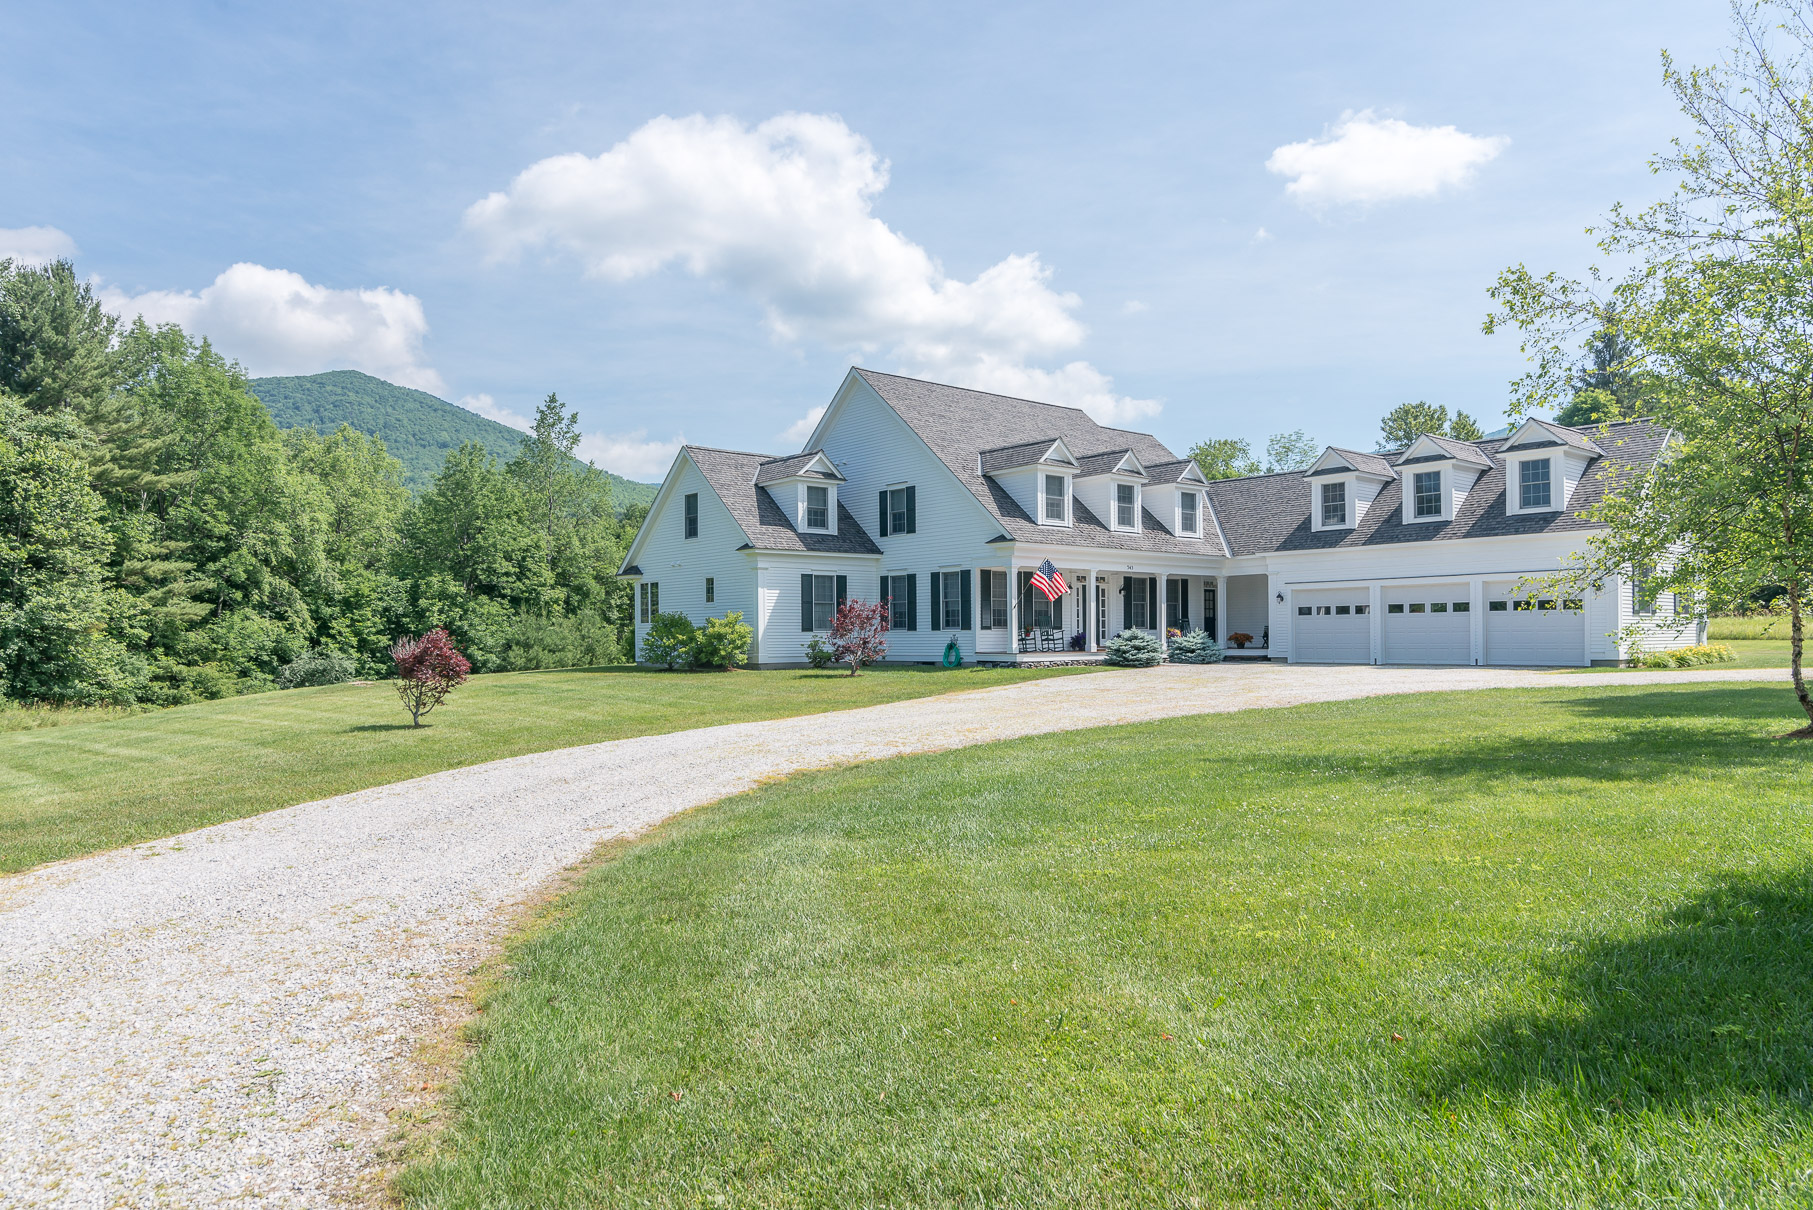 Villa per Vendita alle ore 543 Lower Hollow Road, Dorset 543 Lower Hollow Rd Dorset, Vermont, 05251 Stati Uniti